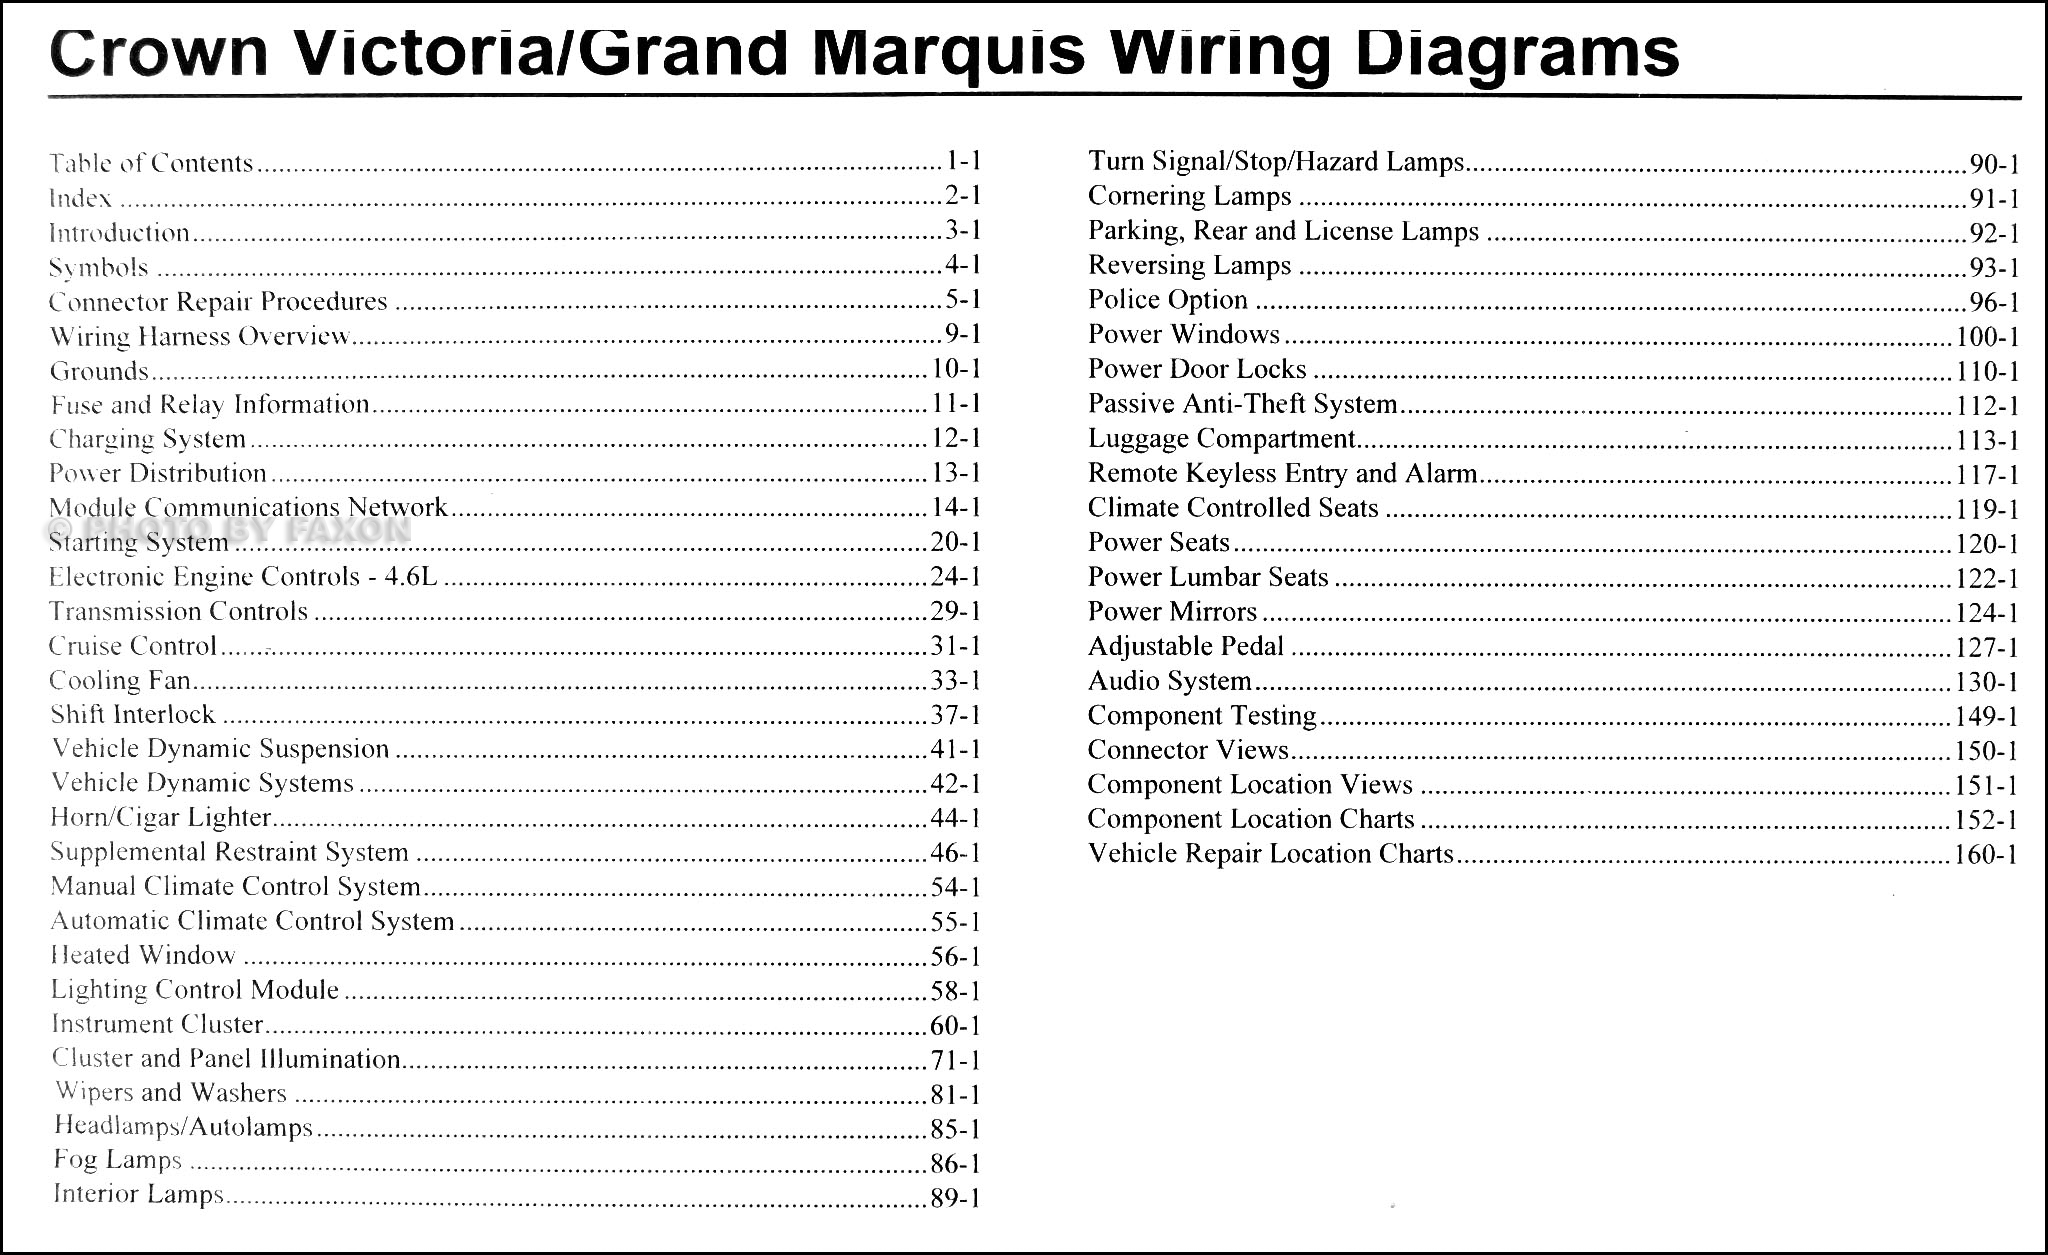 2010 crown victoria wiring diagram 2010 crown victoria & grand marquis wiring diagram manual ...